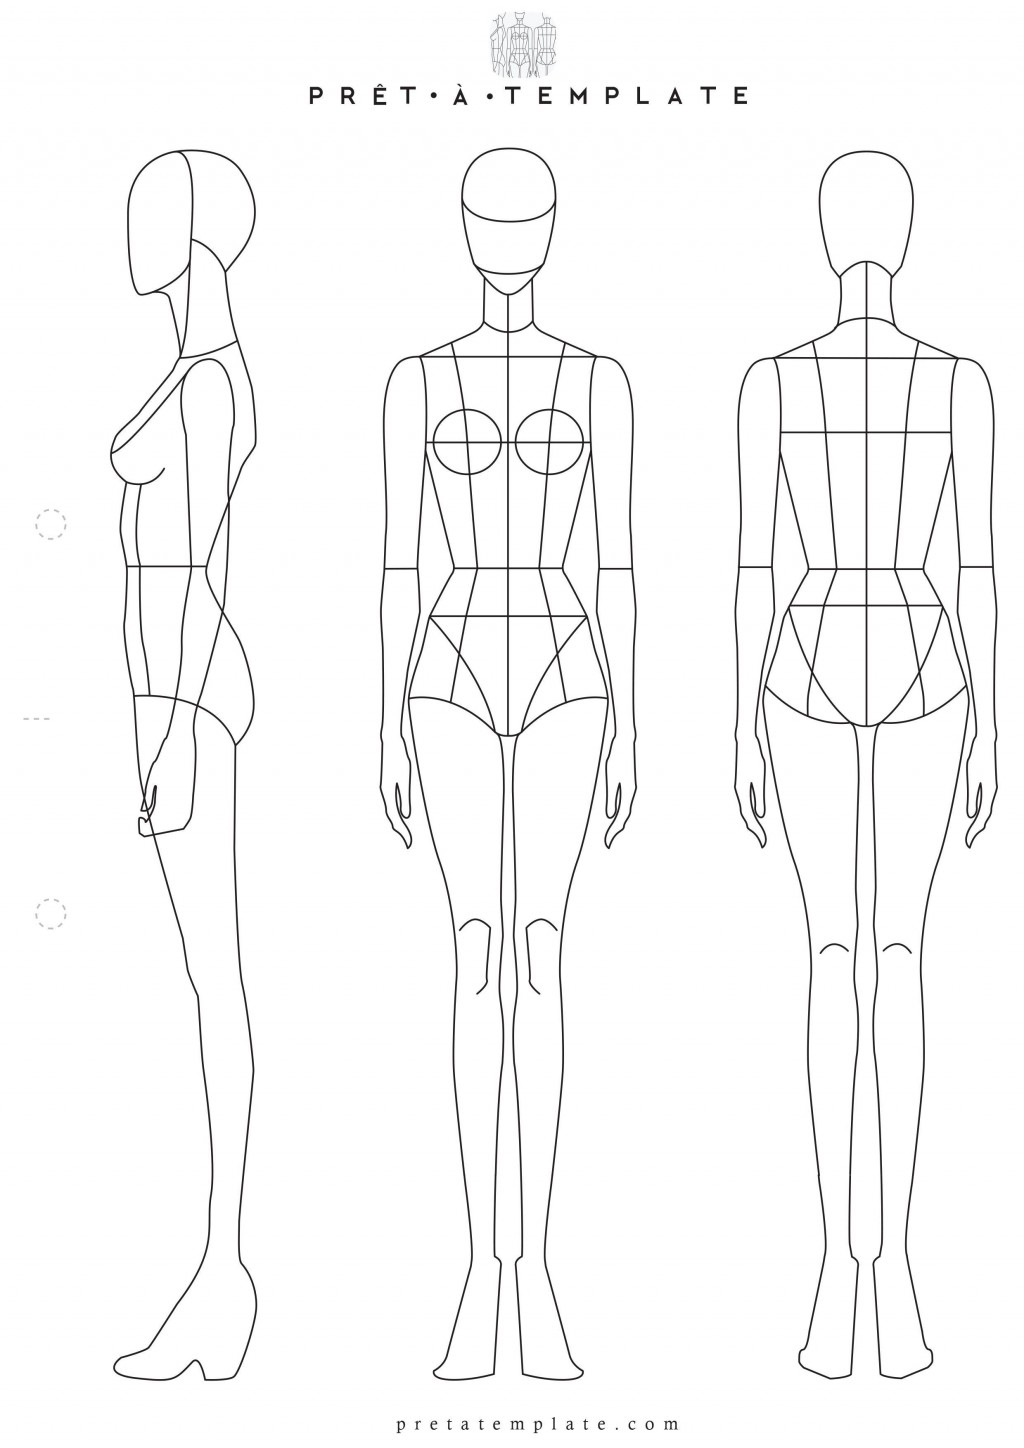 002 Stunning Body Template For Fashion Design Highest Quality  Female Male HumanLarge